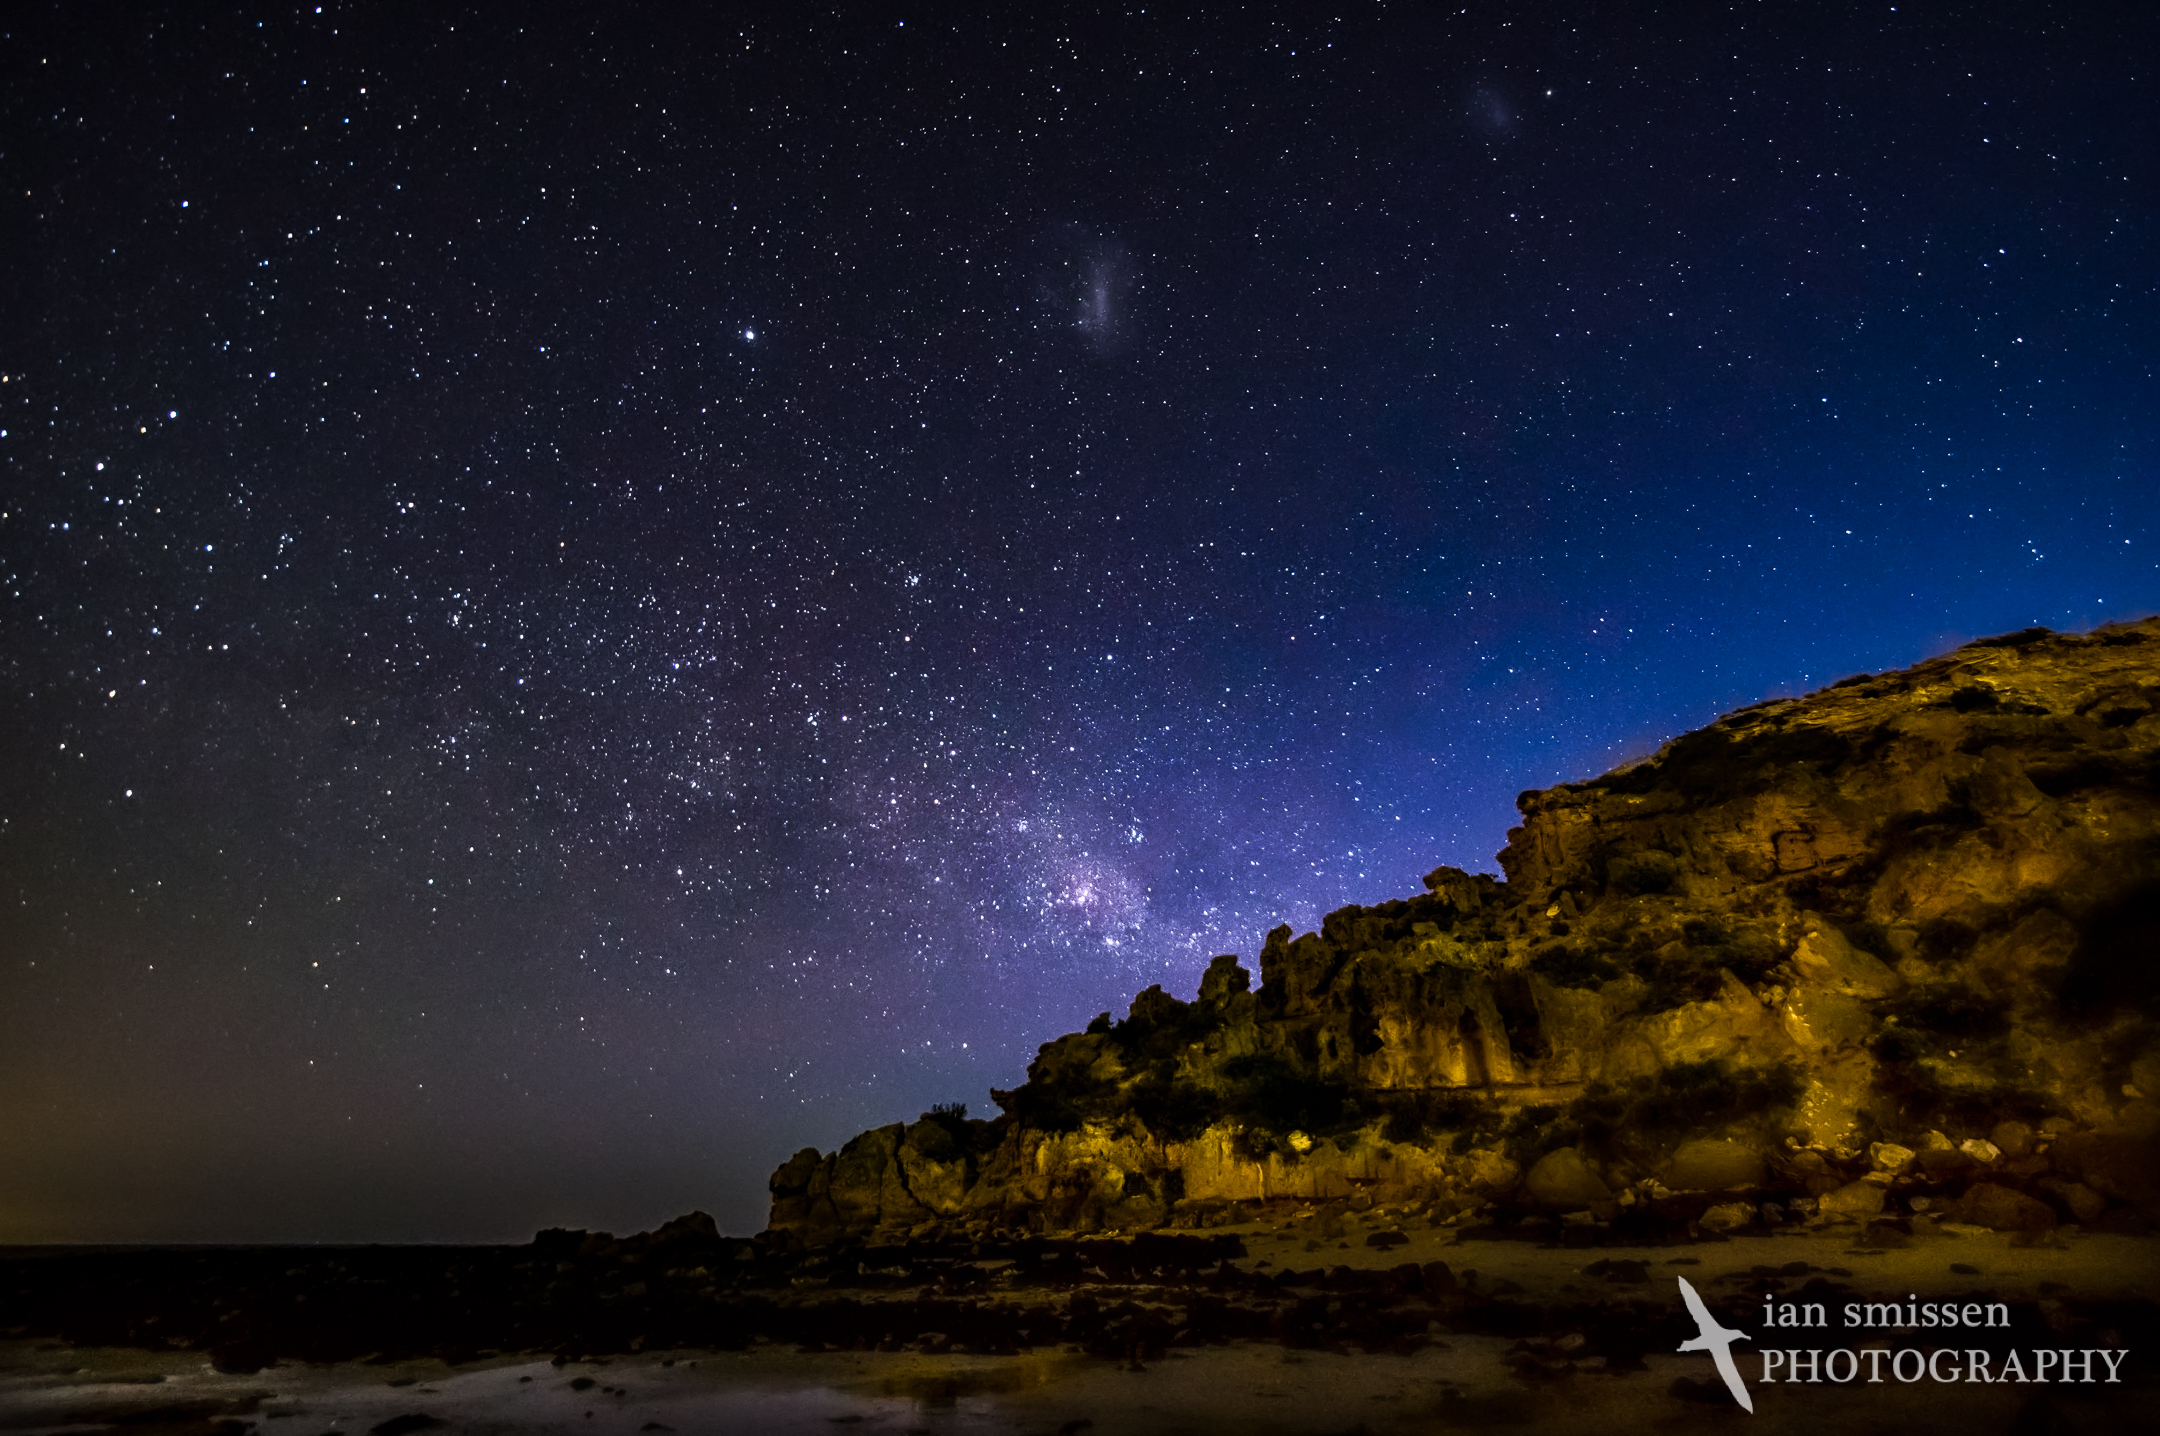 Milky Way over The Bluff